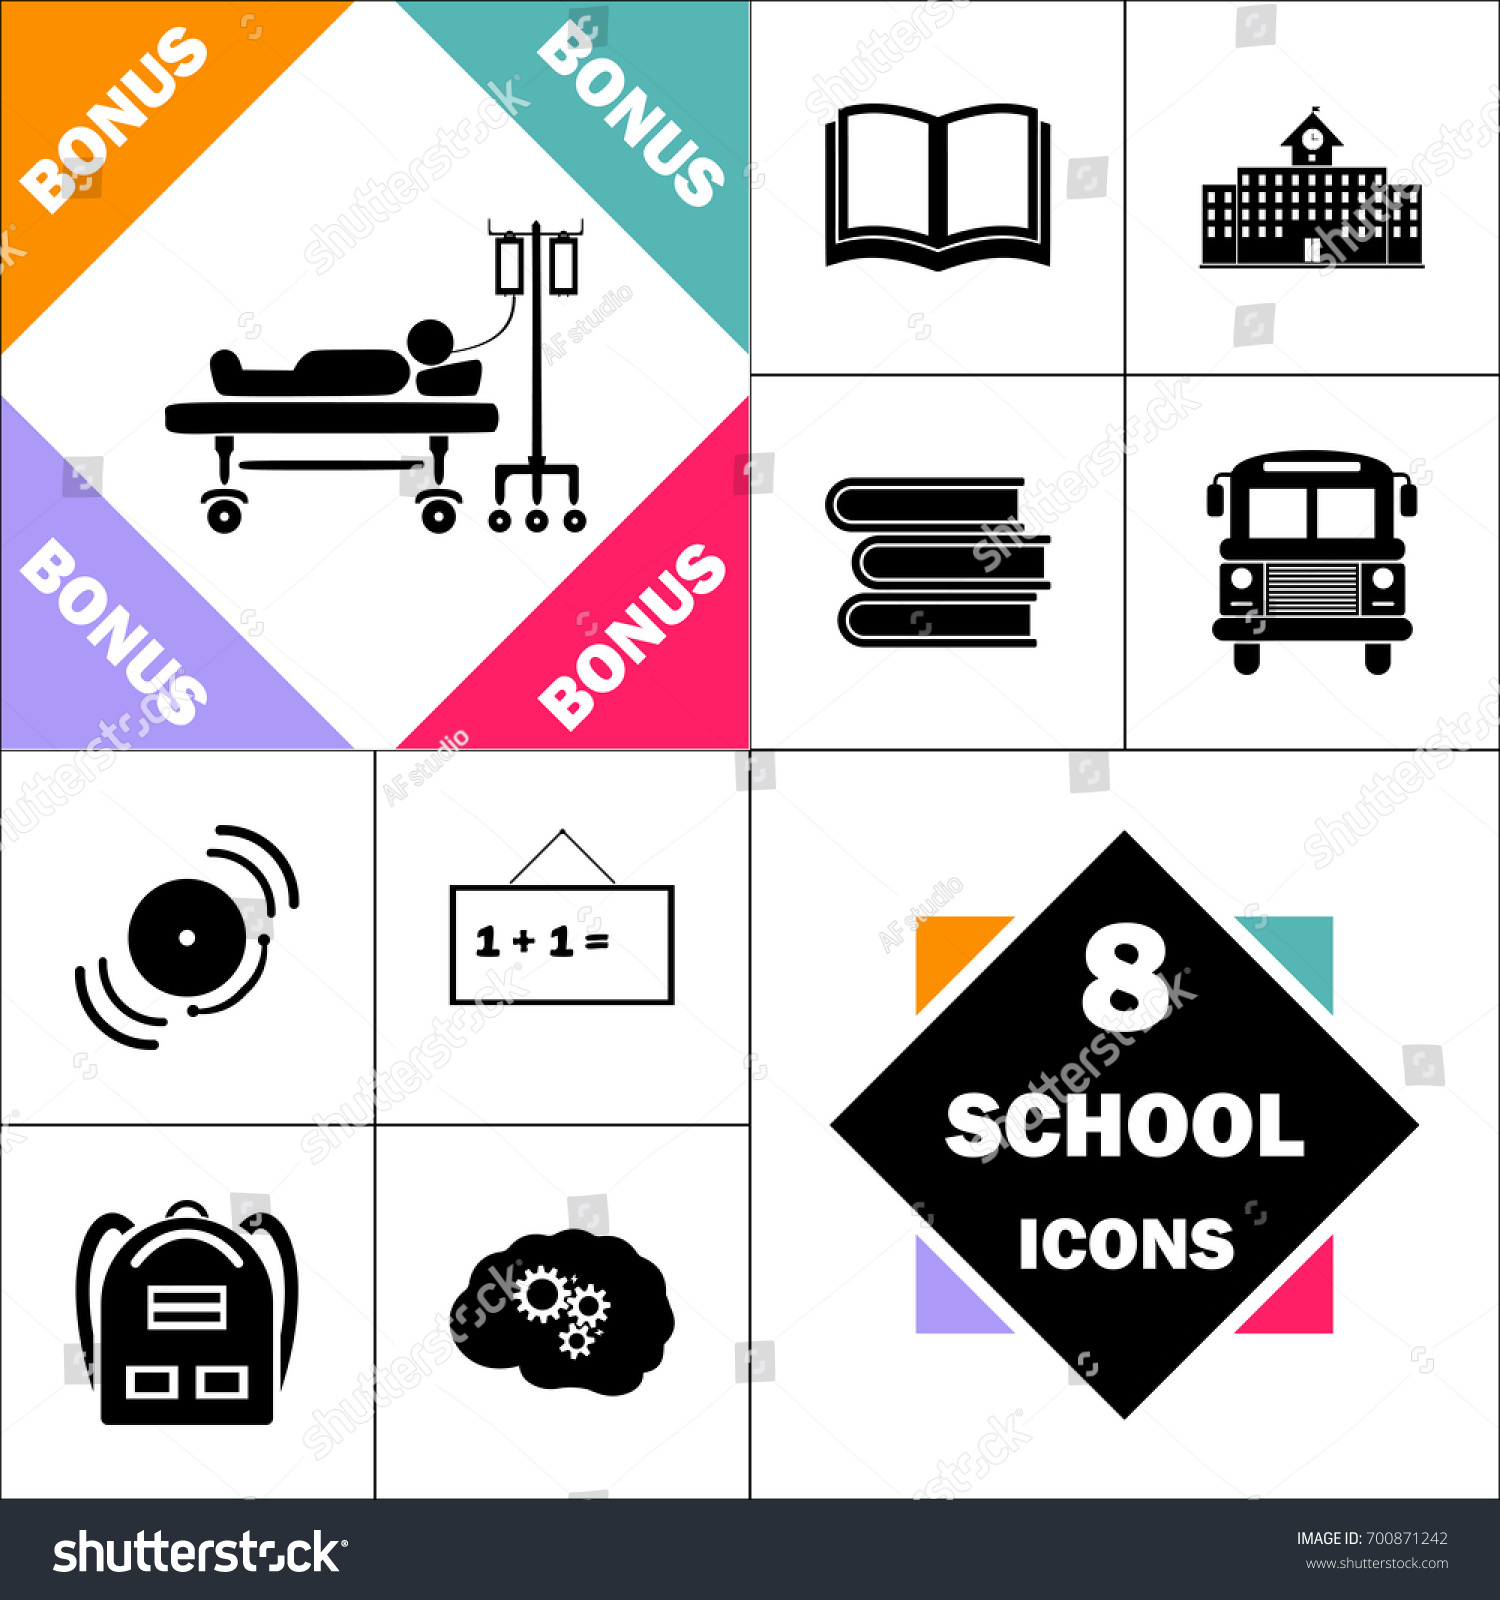 No Textbooks Icon Wiring Diagrams Basicwiring2wireswitchedplugbjpg Hospitalized Set Perfect Back School Stock Vector 700871242 Rh Shutterstock Com In Primary